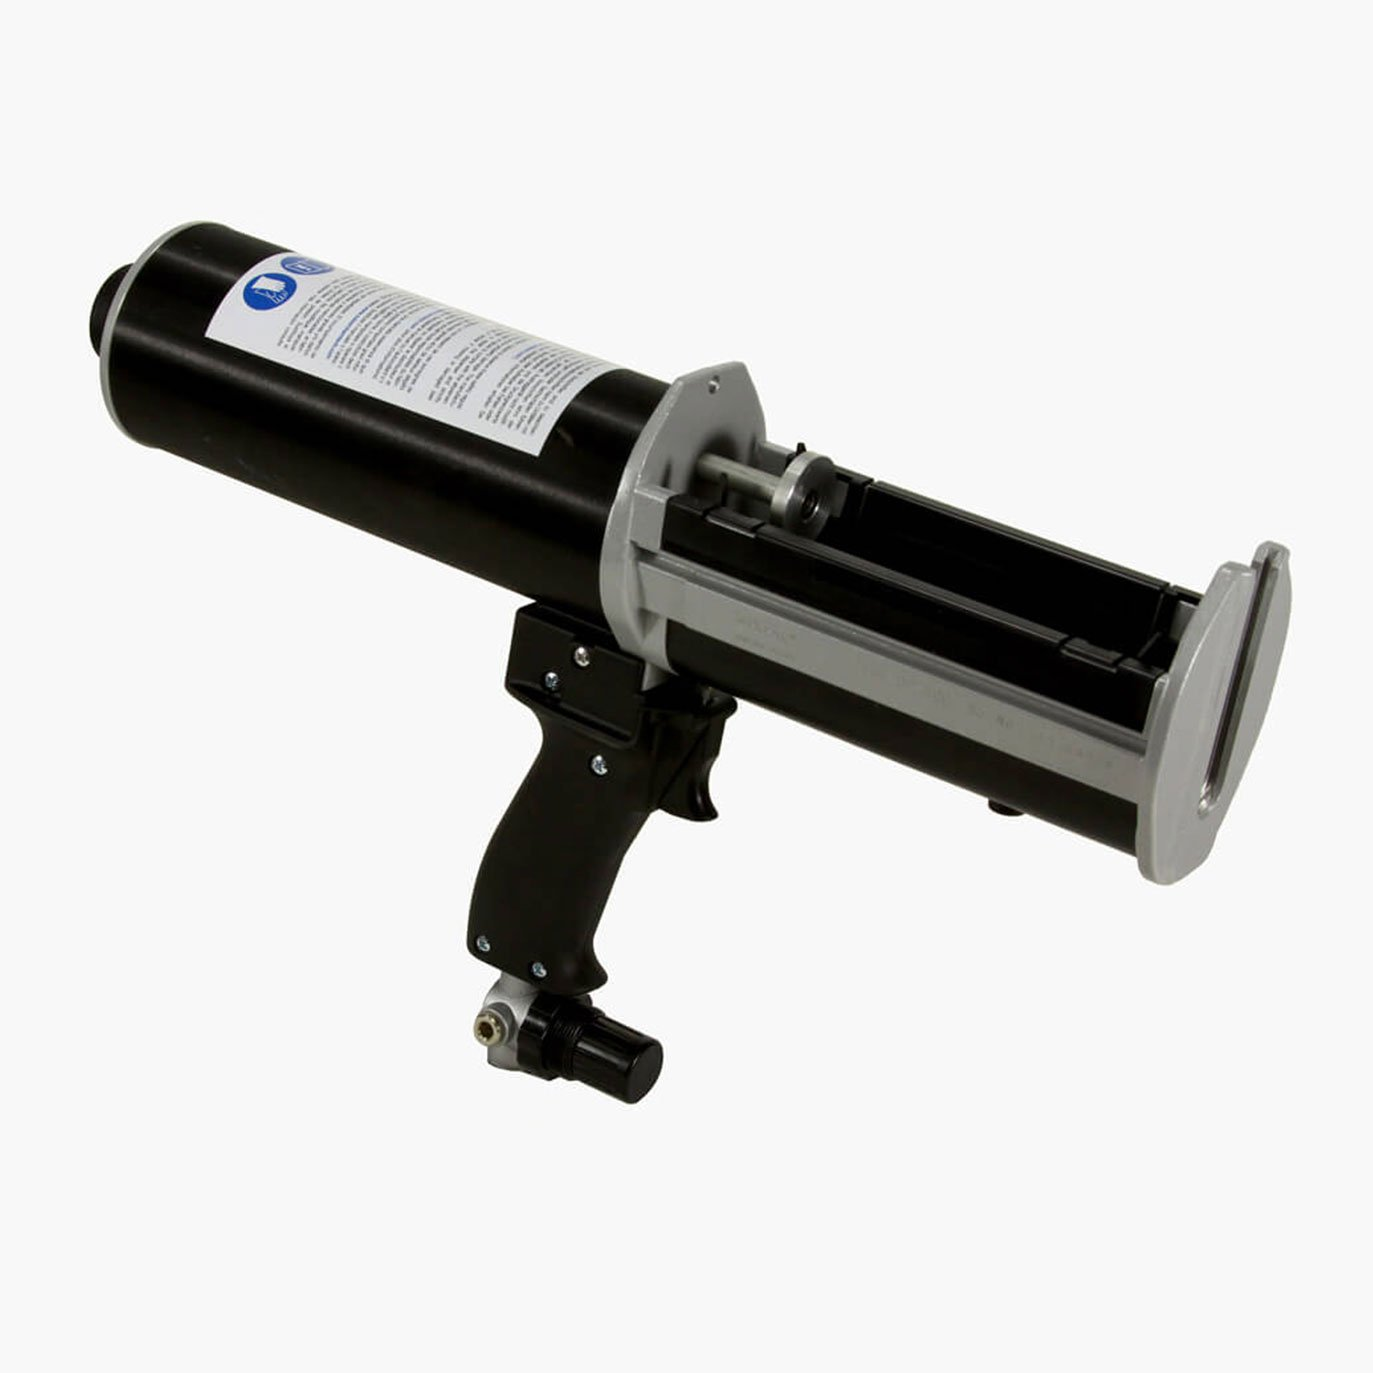 Image of Pneumatic Bulk Adhesive Dispenser